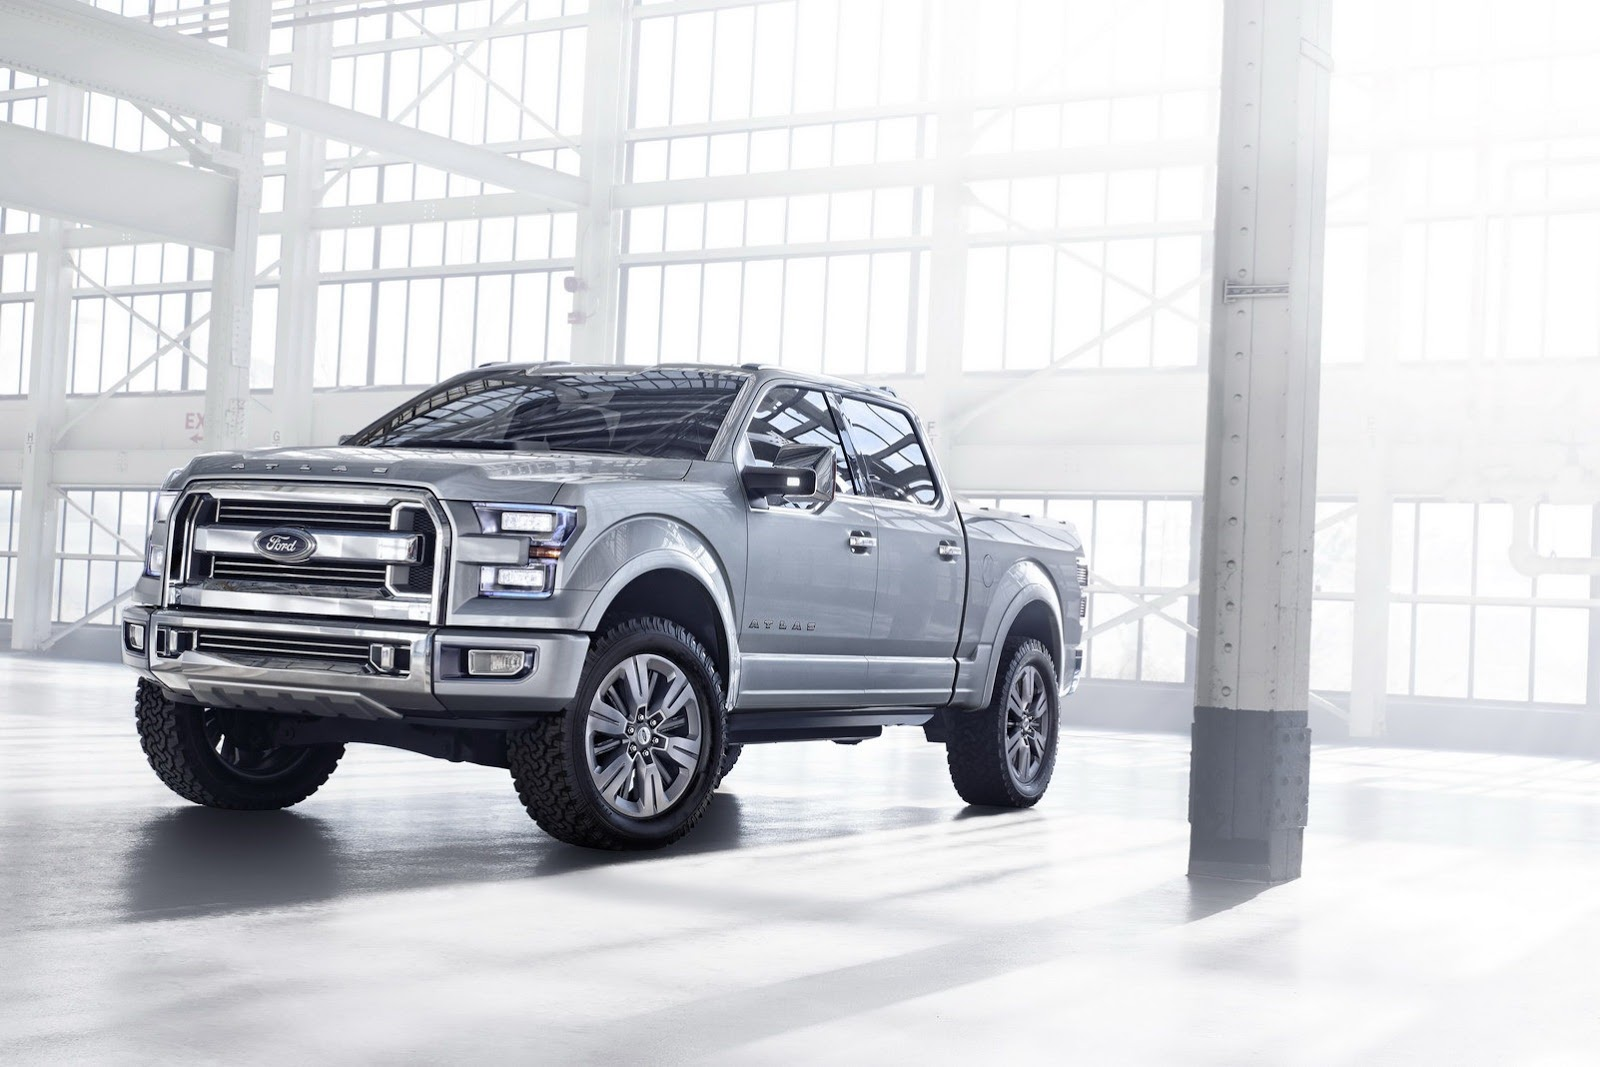 2015 ford f 150 next generation ecoboost powertrain. Cars Review. Best American Auto & Cars Review